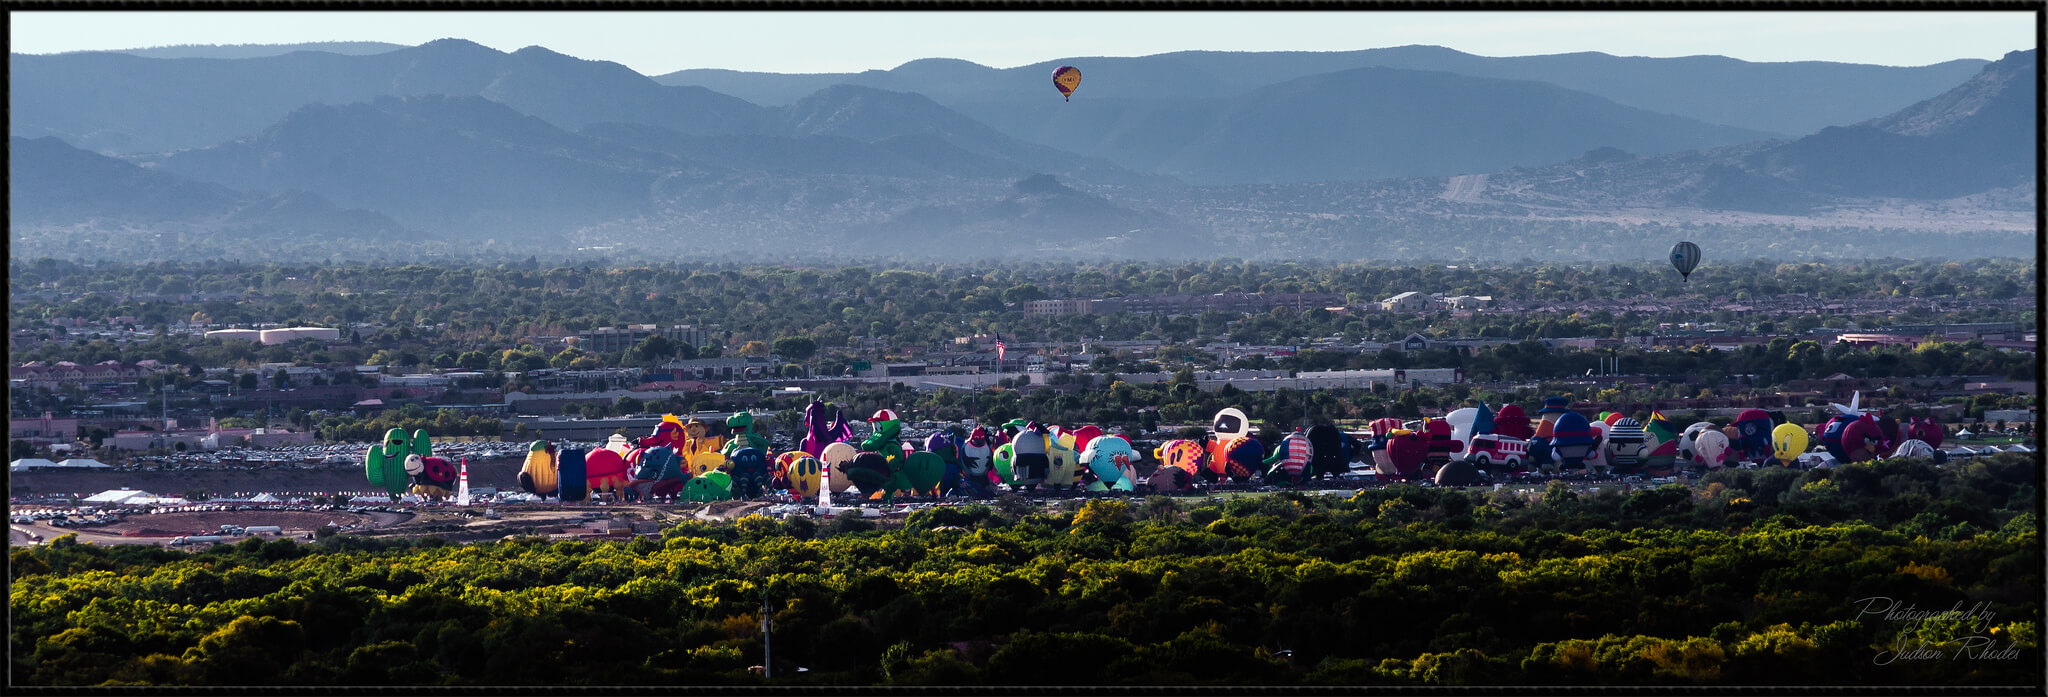 The 2016 Albuquerque International Balloon Festival